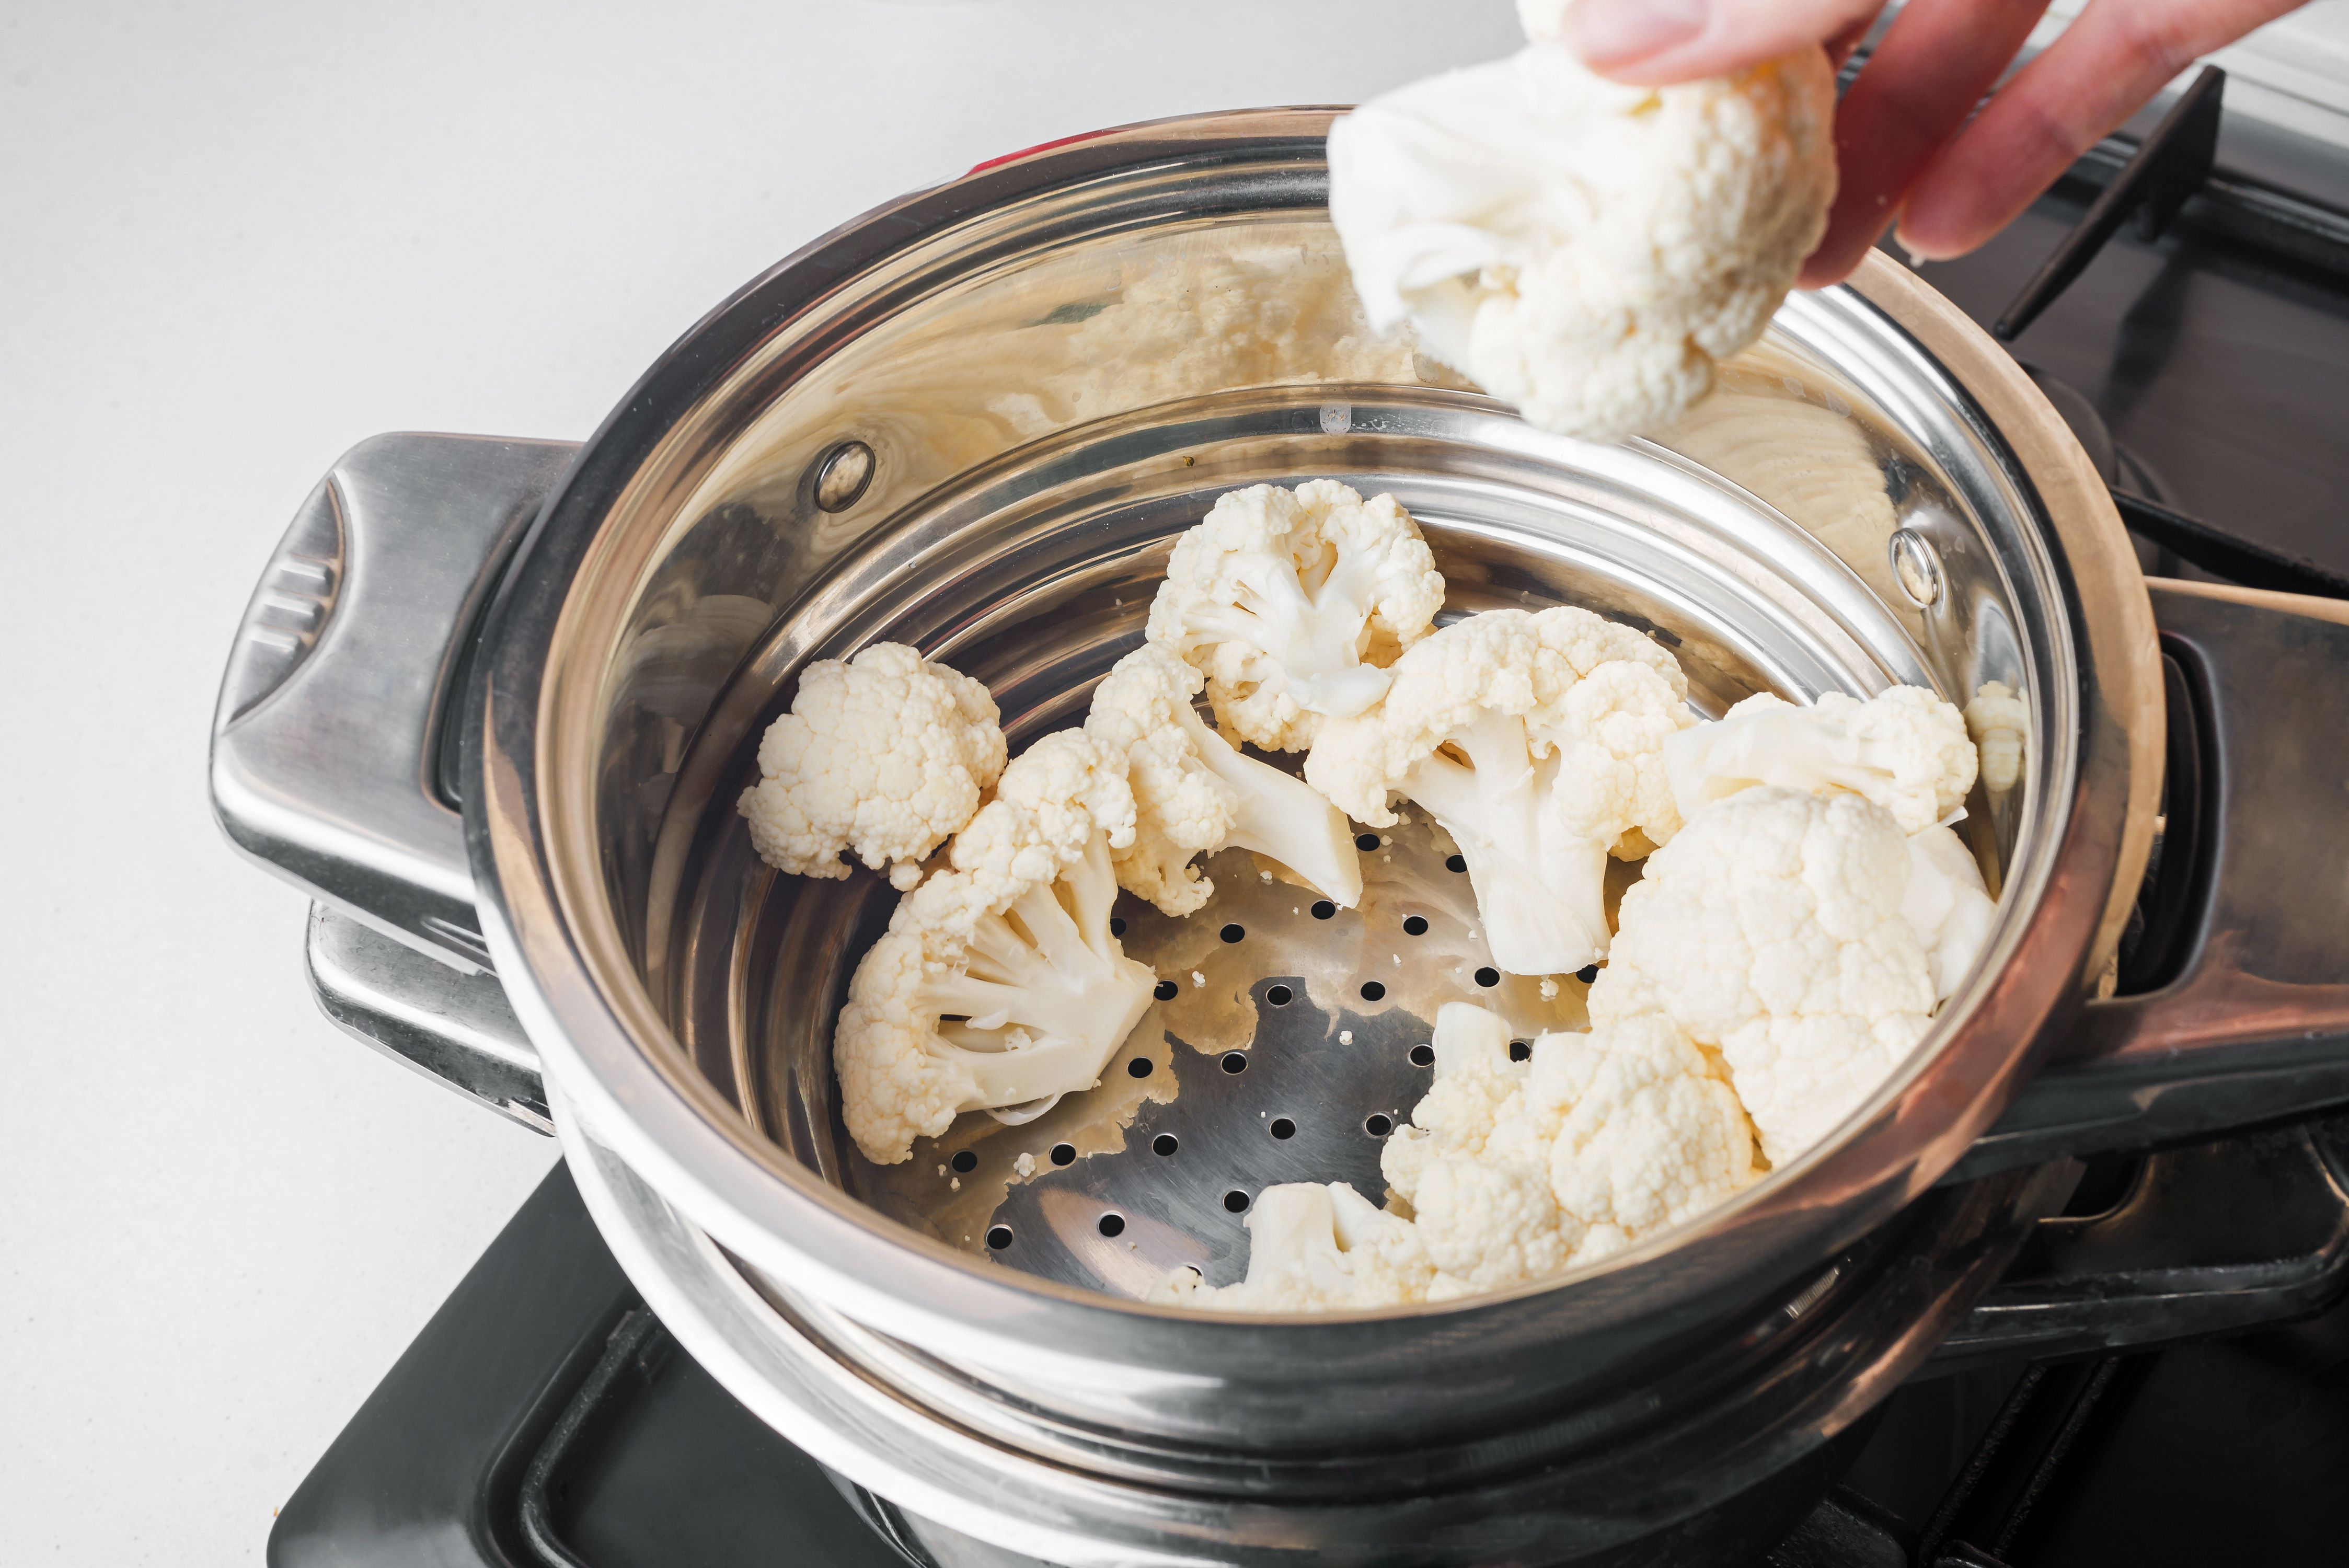 Hand placing cauliflower florets into steaming basket